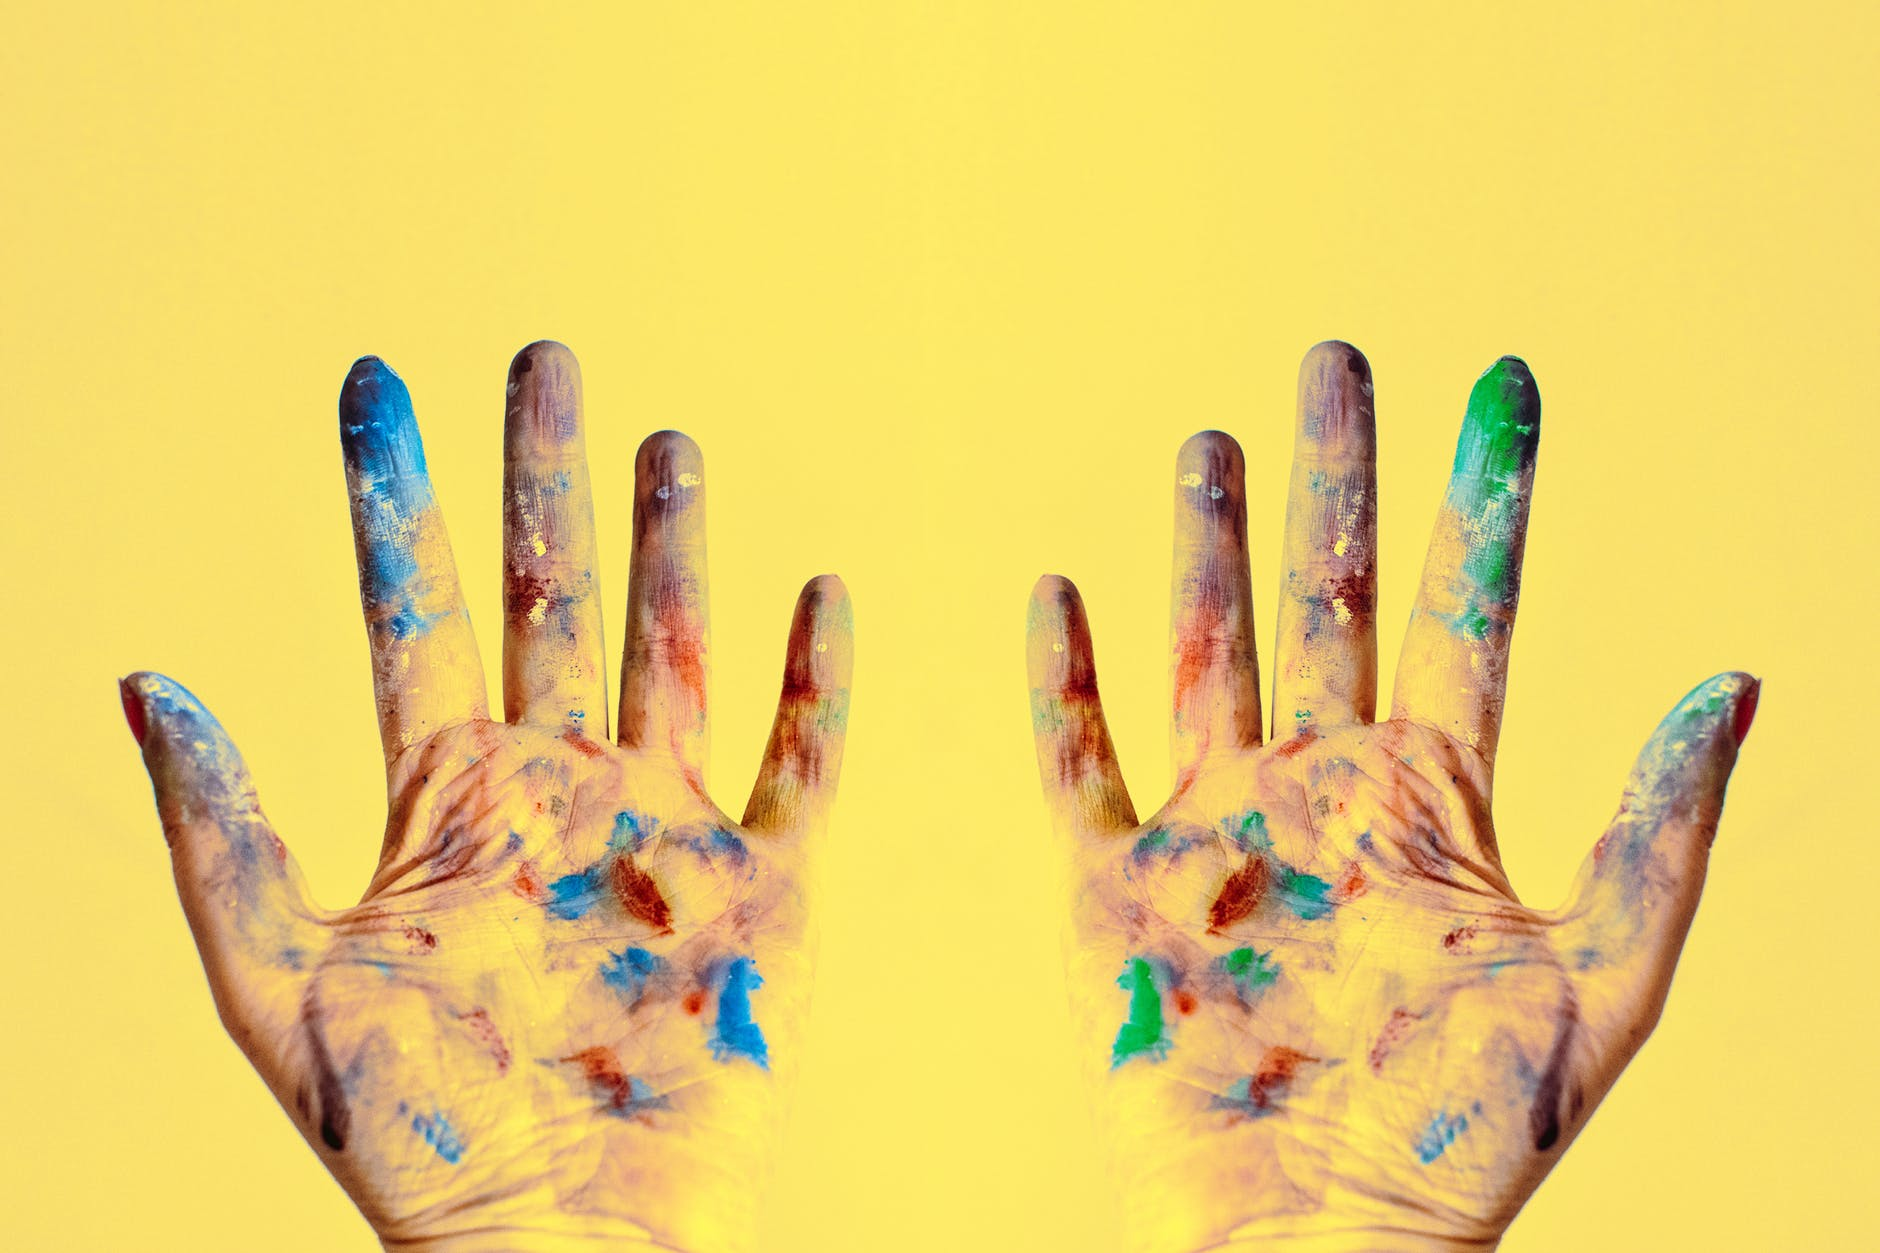 both hands stained with paints